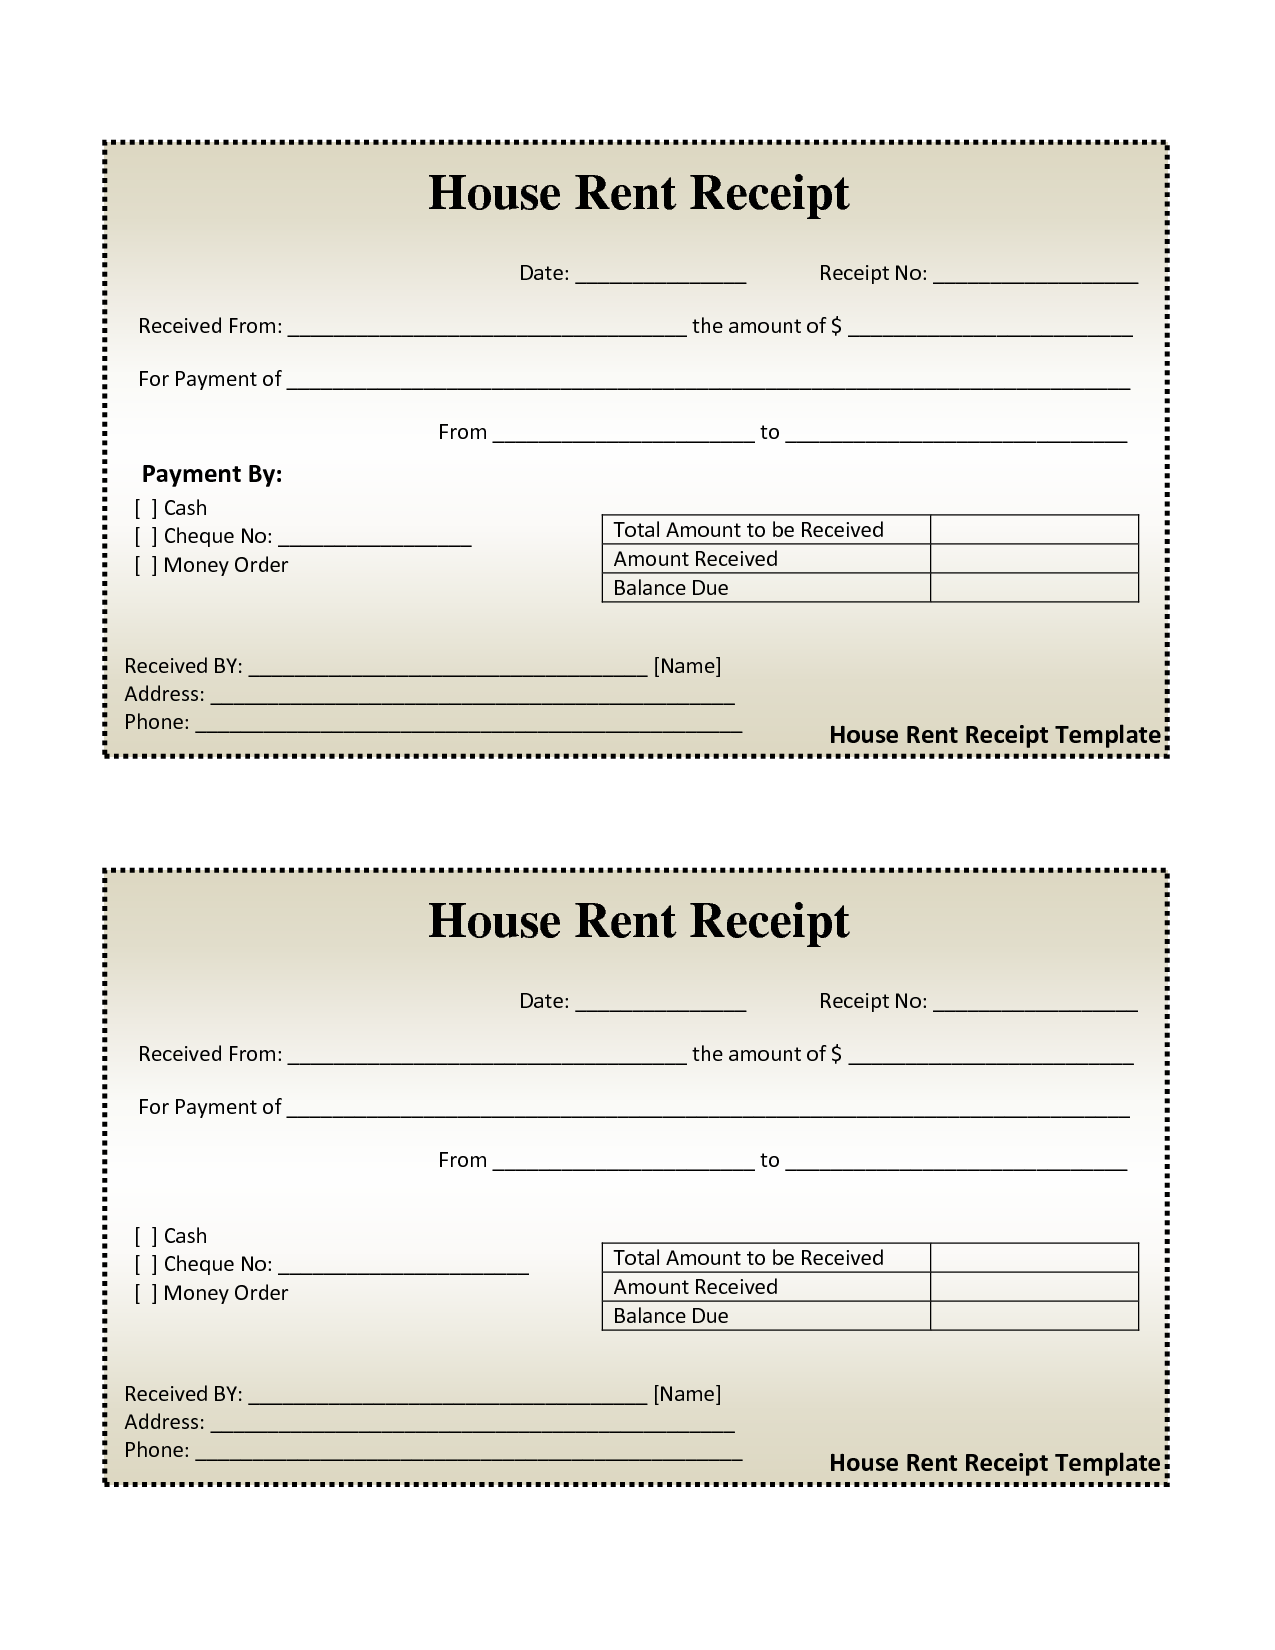 Free Rent Receipts Endearing Free House Rental Invoice  House Rent Receipt Template  Doc  Rent .